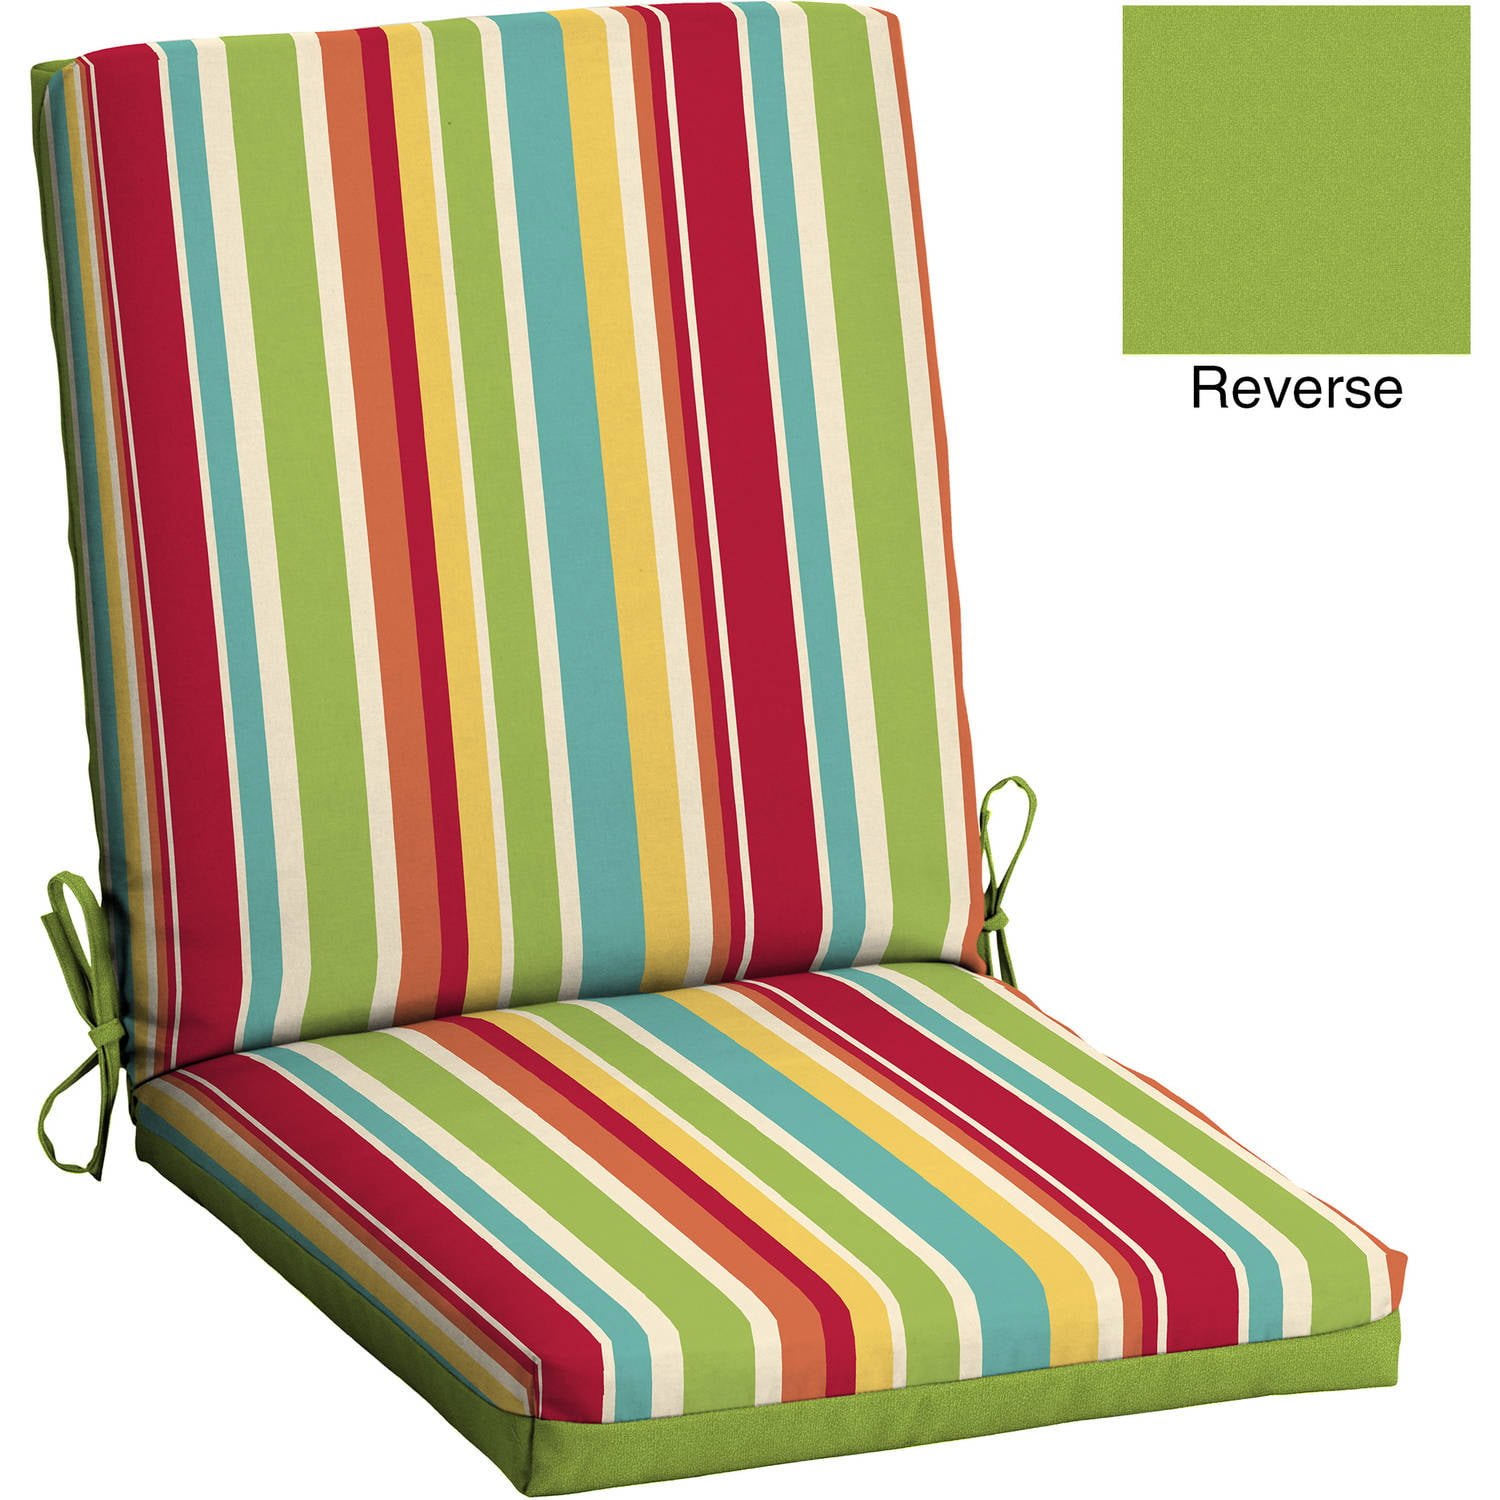 Mainstays Outdoor Patio Reversible Dining Chair Cushion, Multi Stripe - Outdoor Chair Cushions